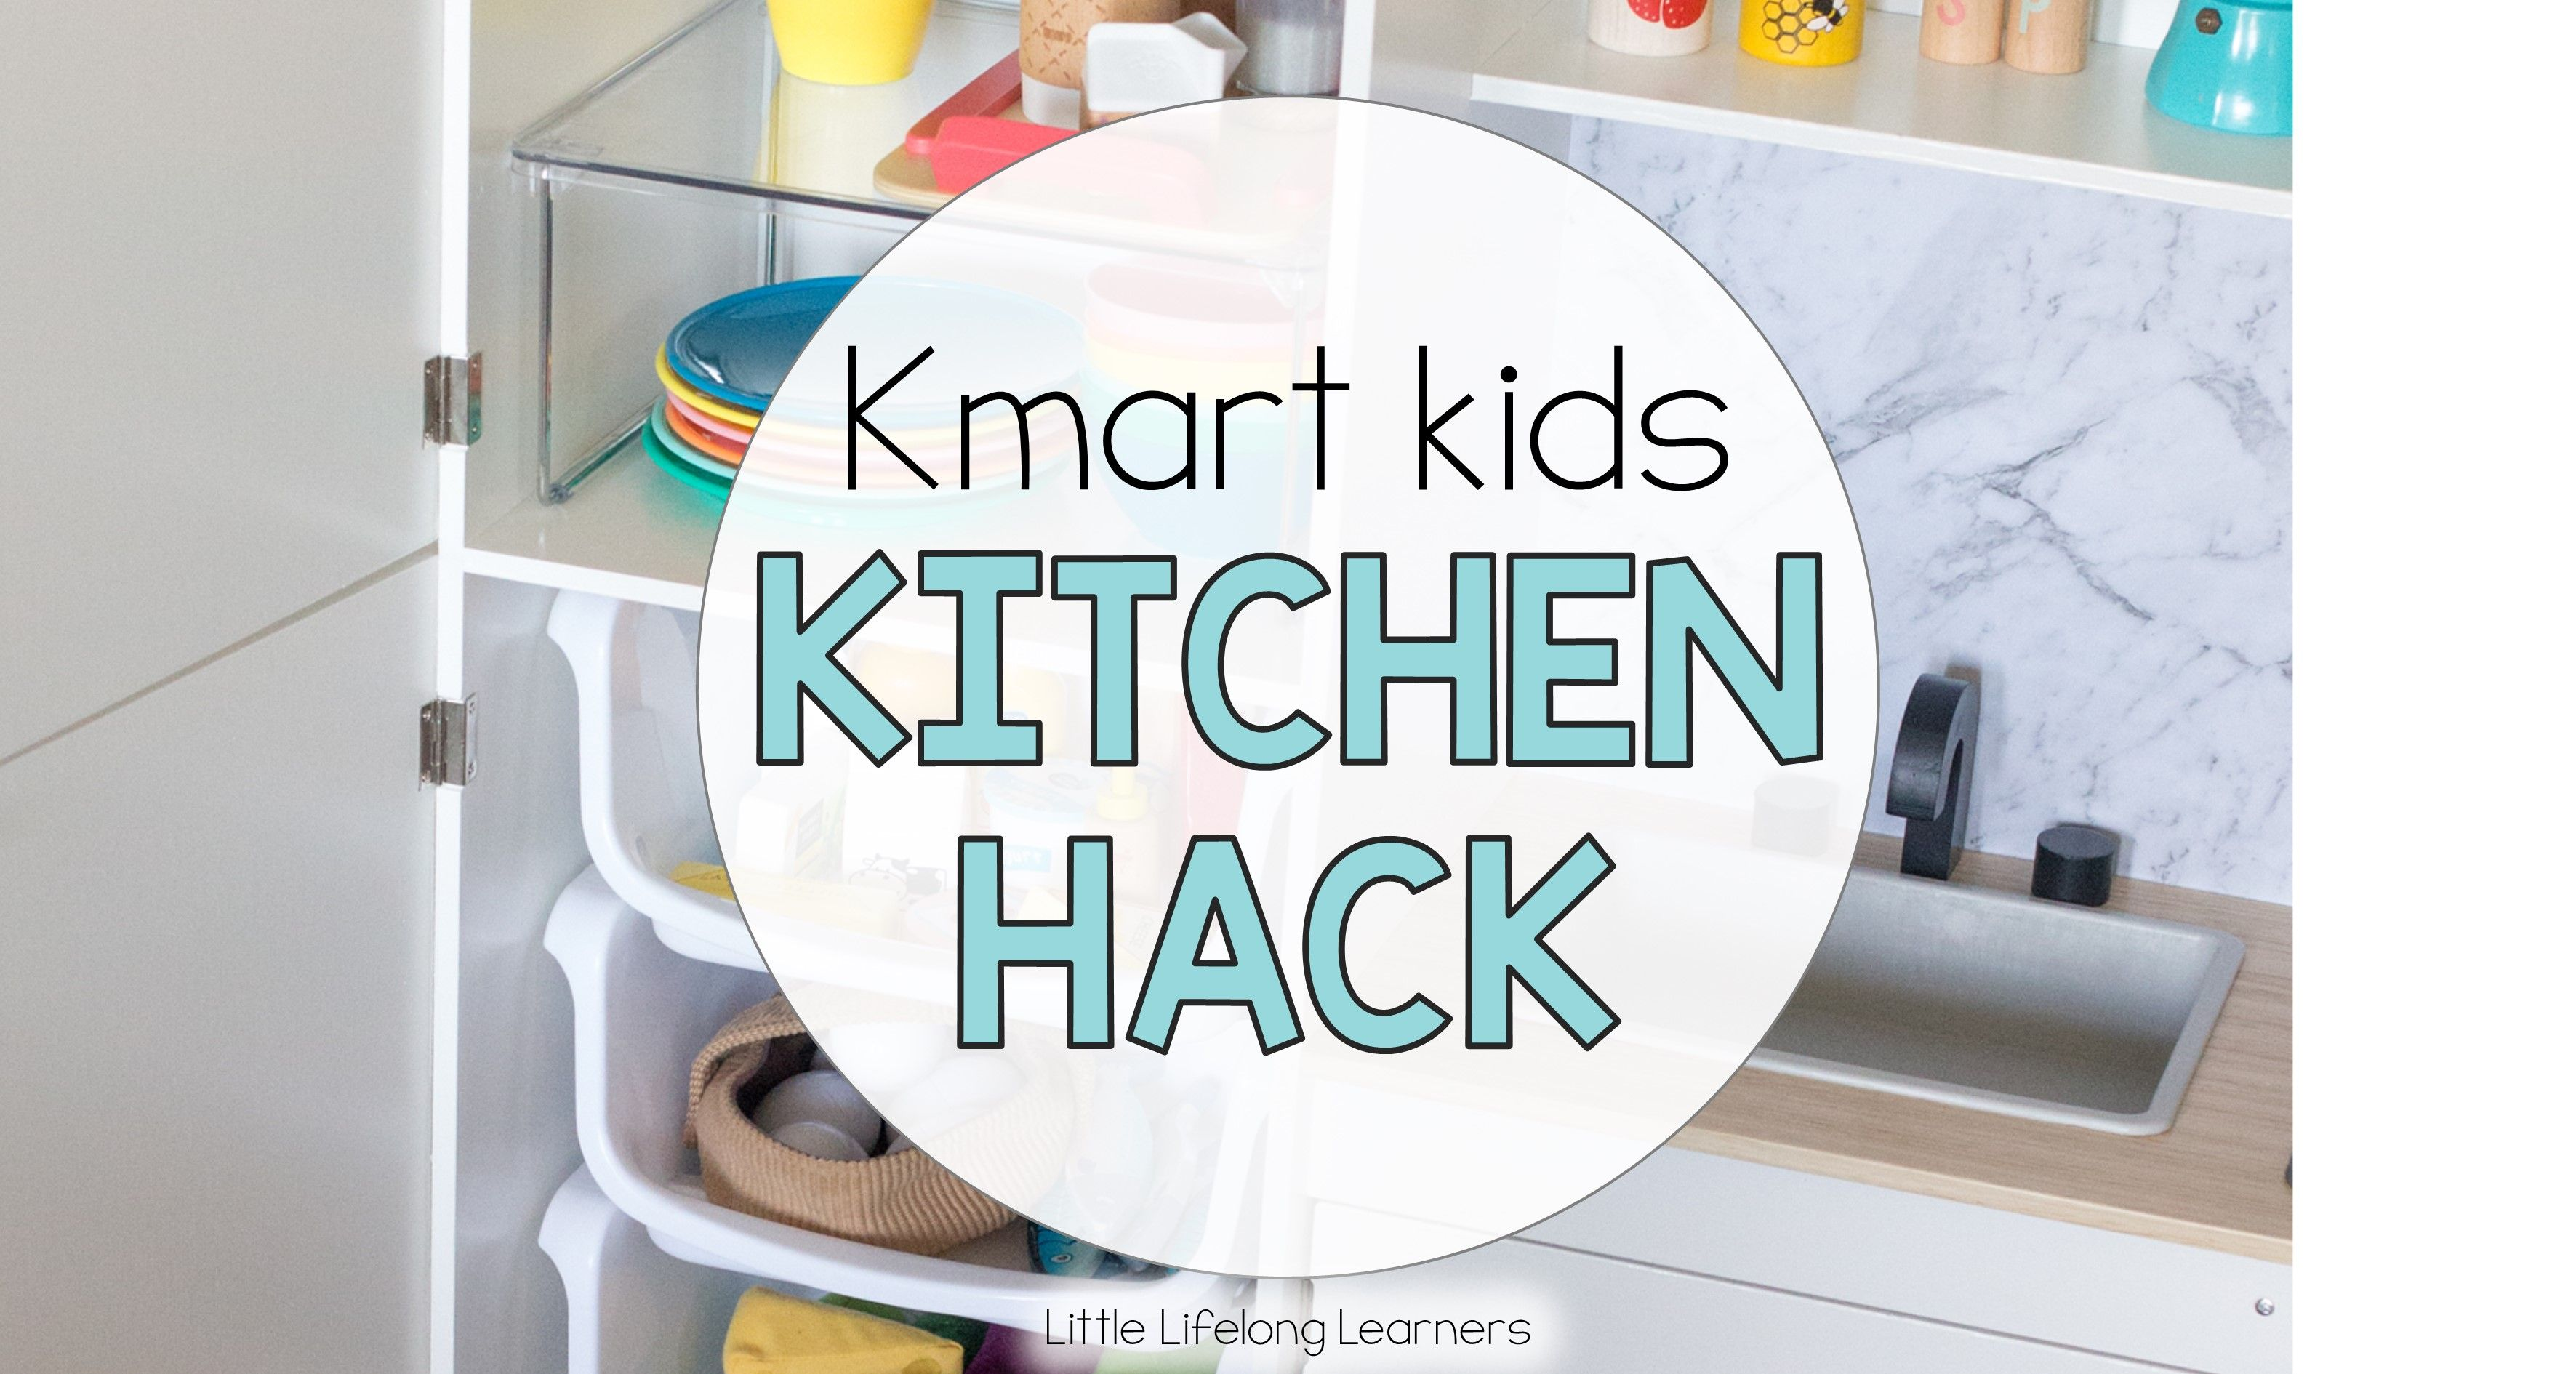 Kmart Kitchen Hack for Kids | Kitchens, Organizations and ...